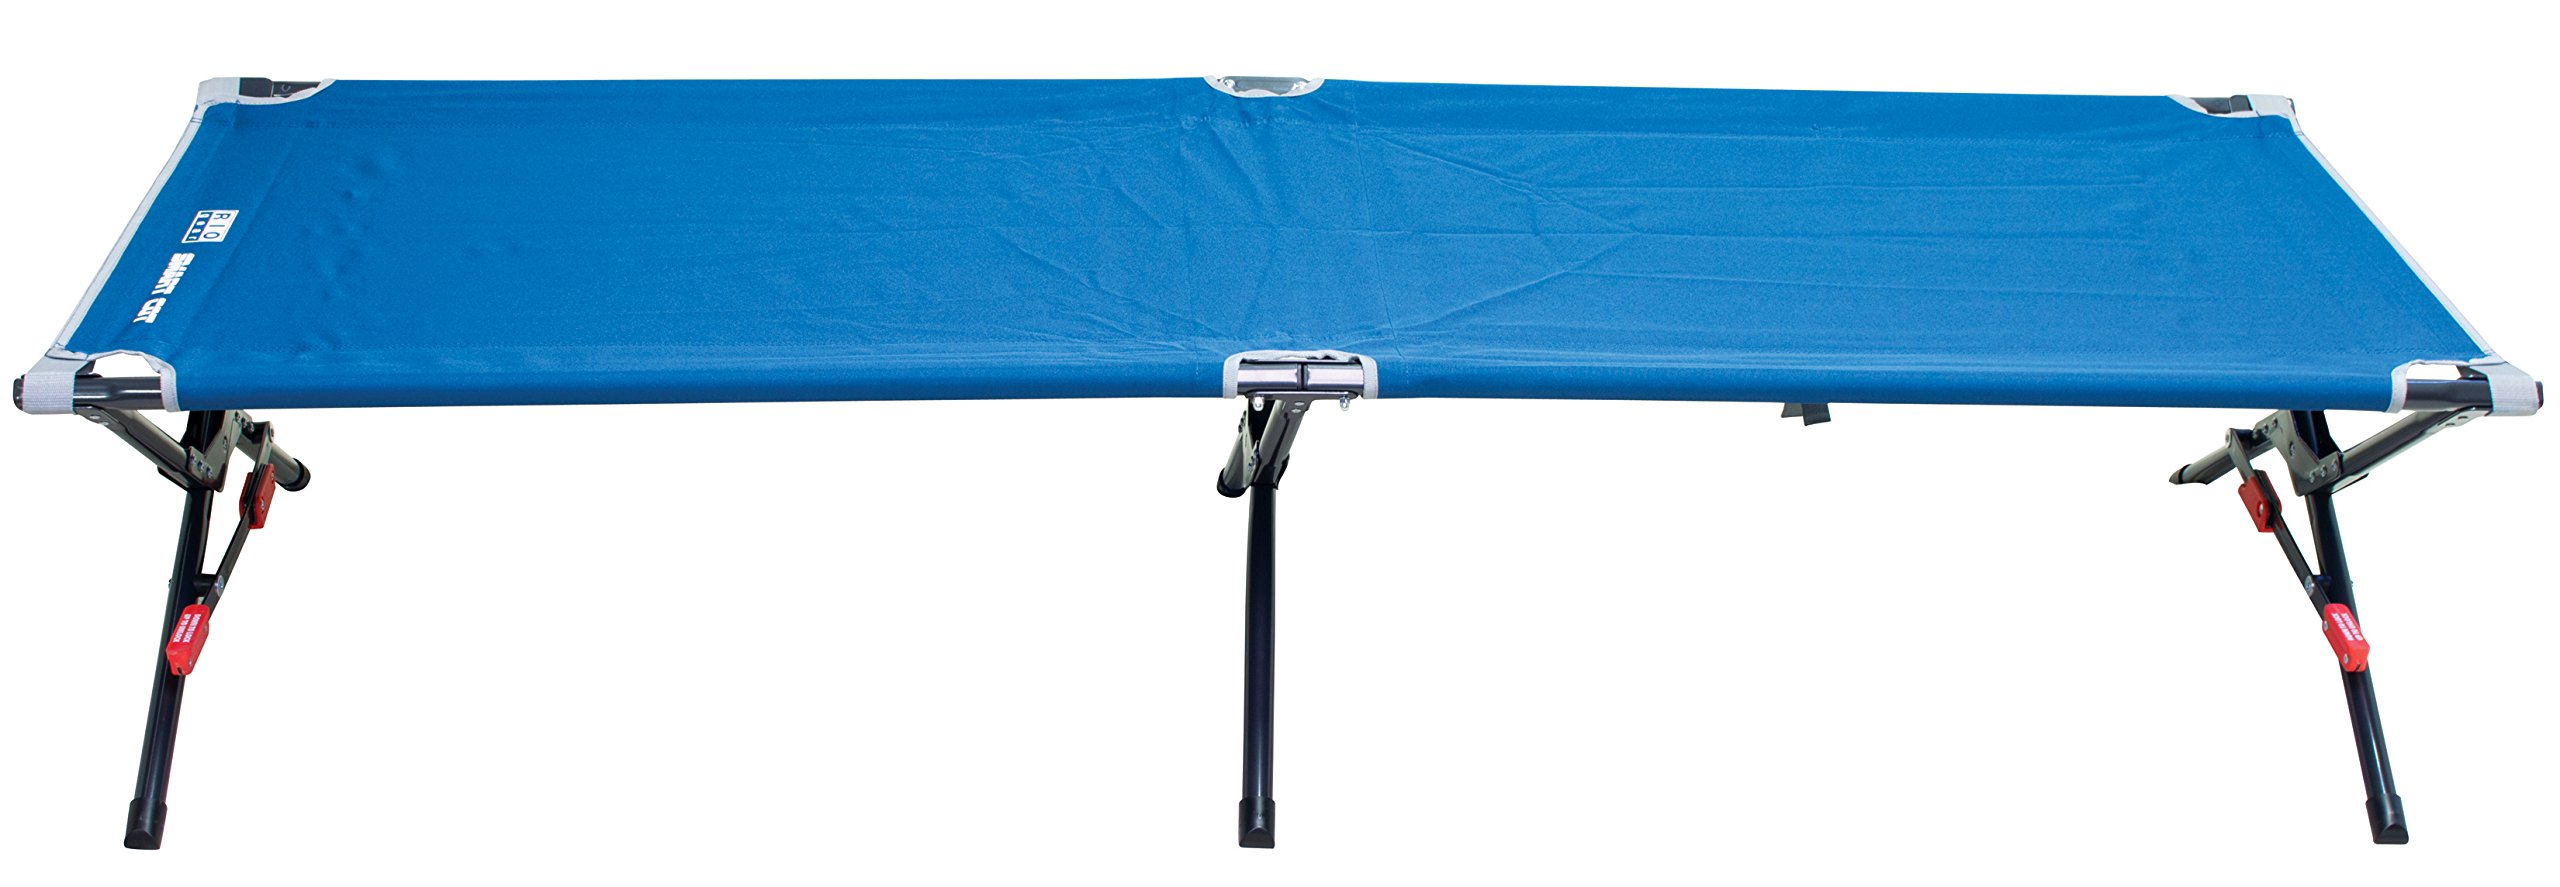 Rio Gear Portable Smart Cot Military Style Folding Camping Cot